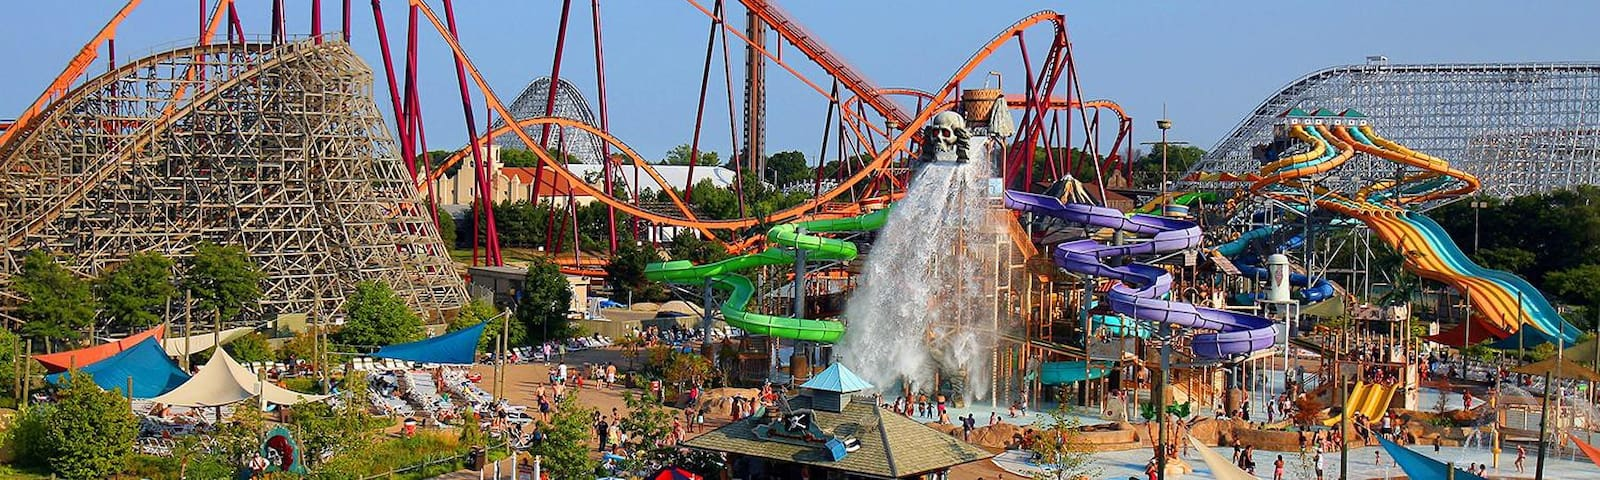 For a day of fun choose either Hurricane Harbor water park, or Six Flags over Texas, both just 2 miles from the house!